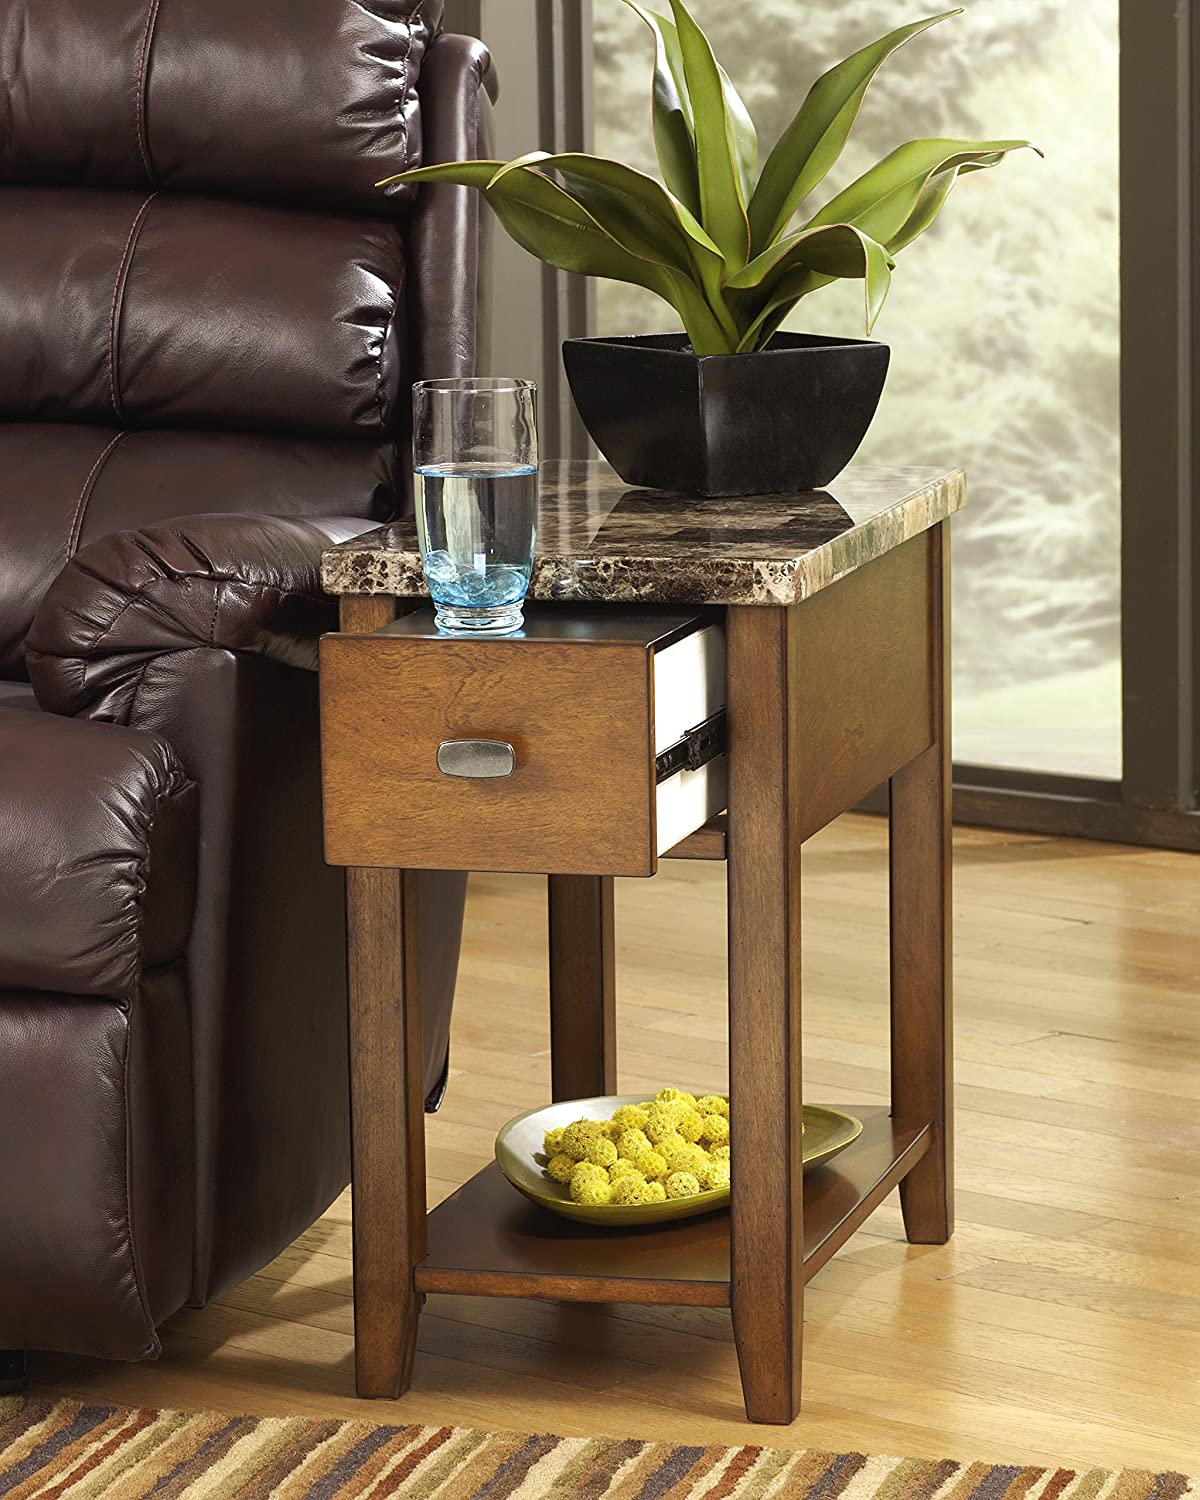 Ashley Furniture Signature Design - Breegin Contemporary Chair Side End Table - Rectangular - Brown